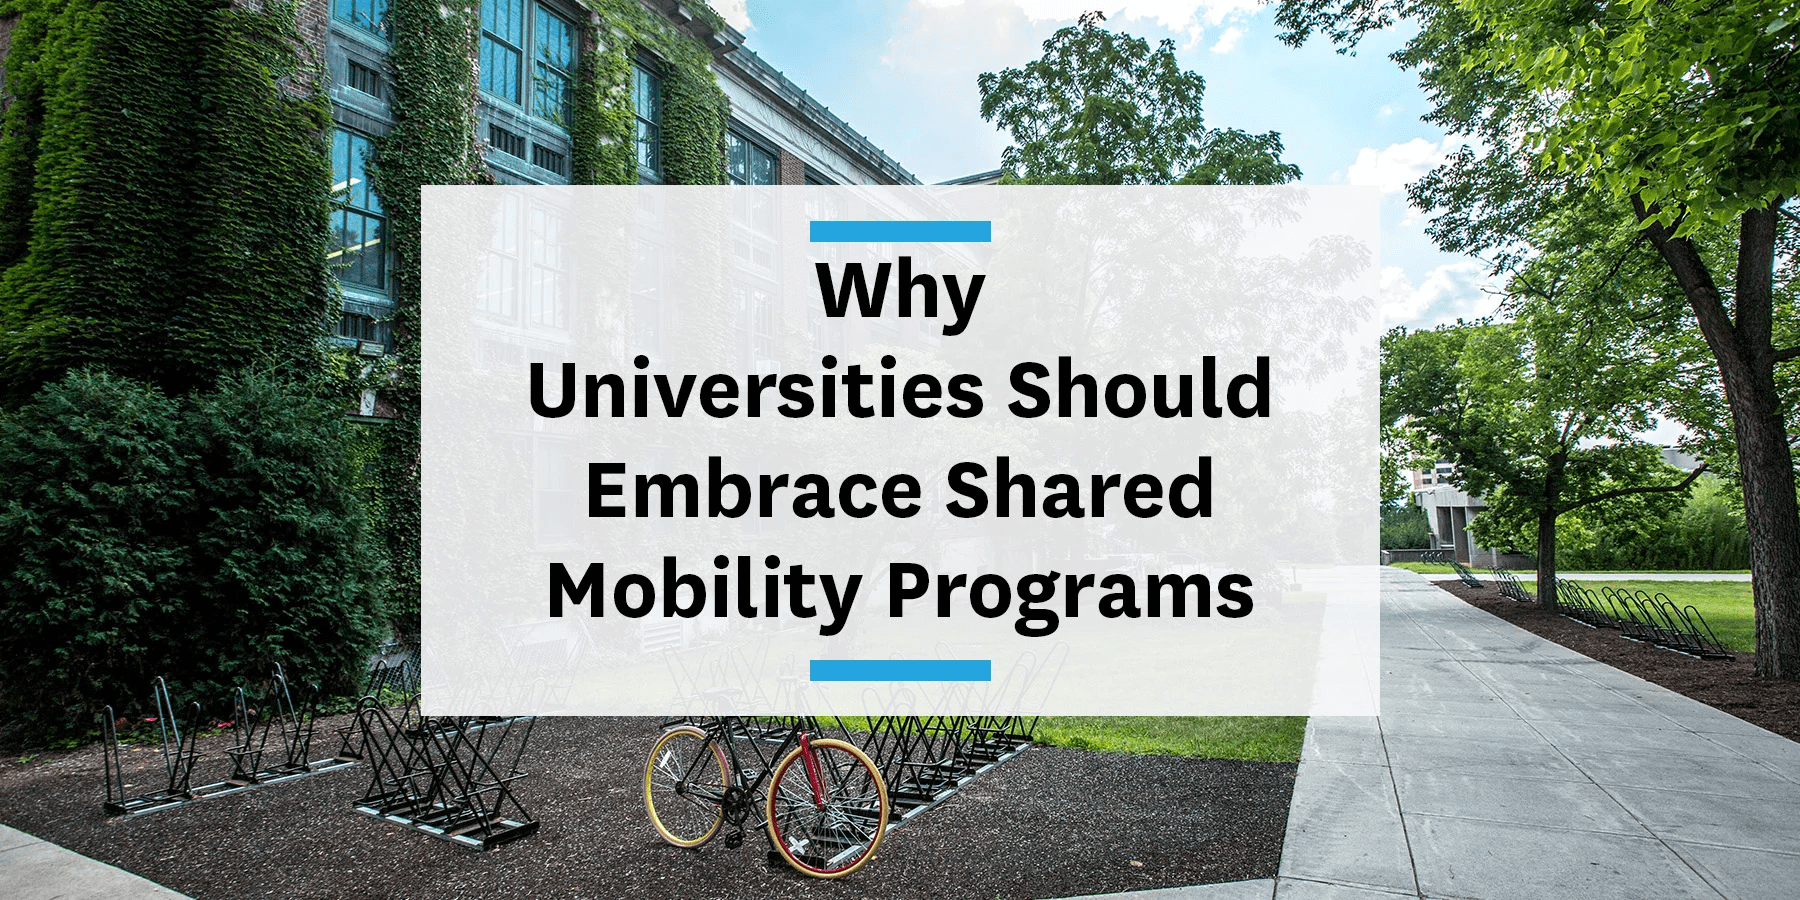 Feature image for universities embracing mobility programs